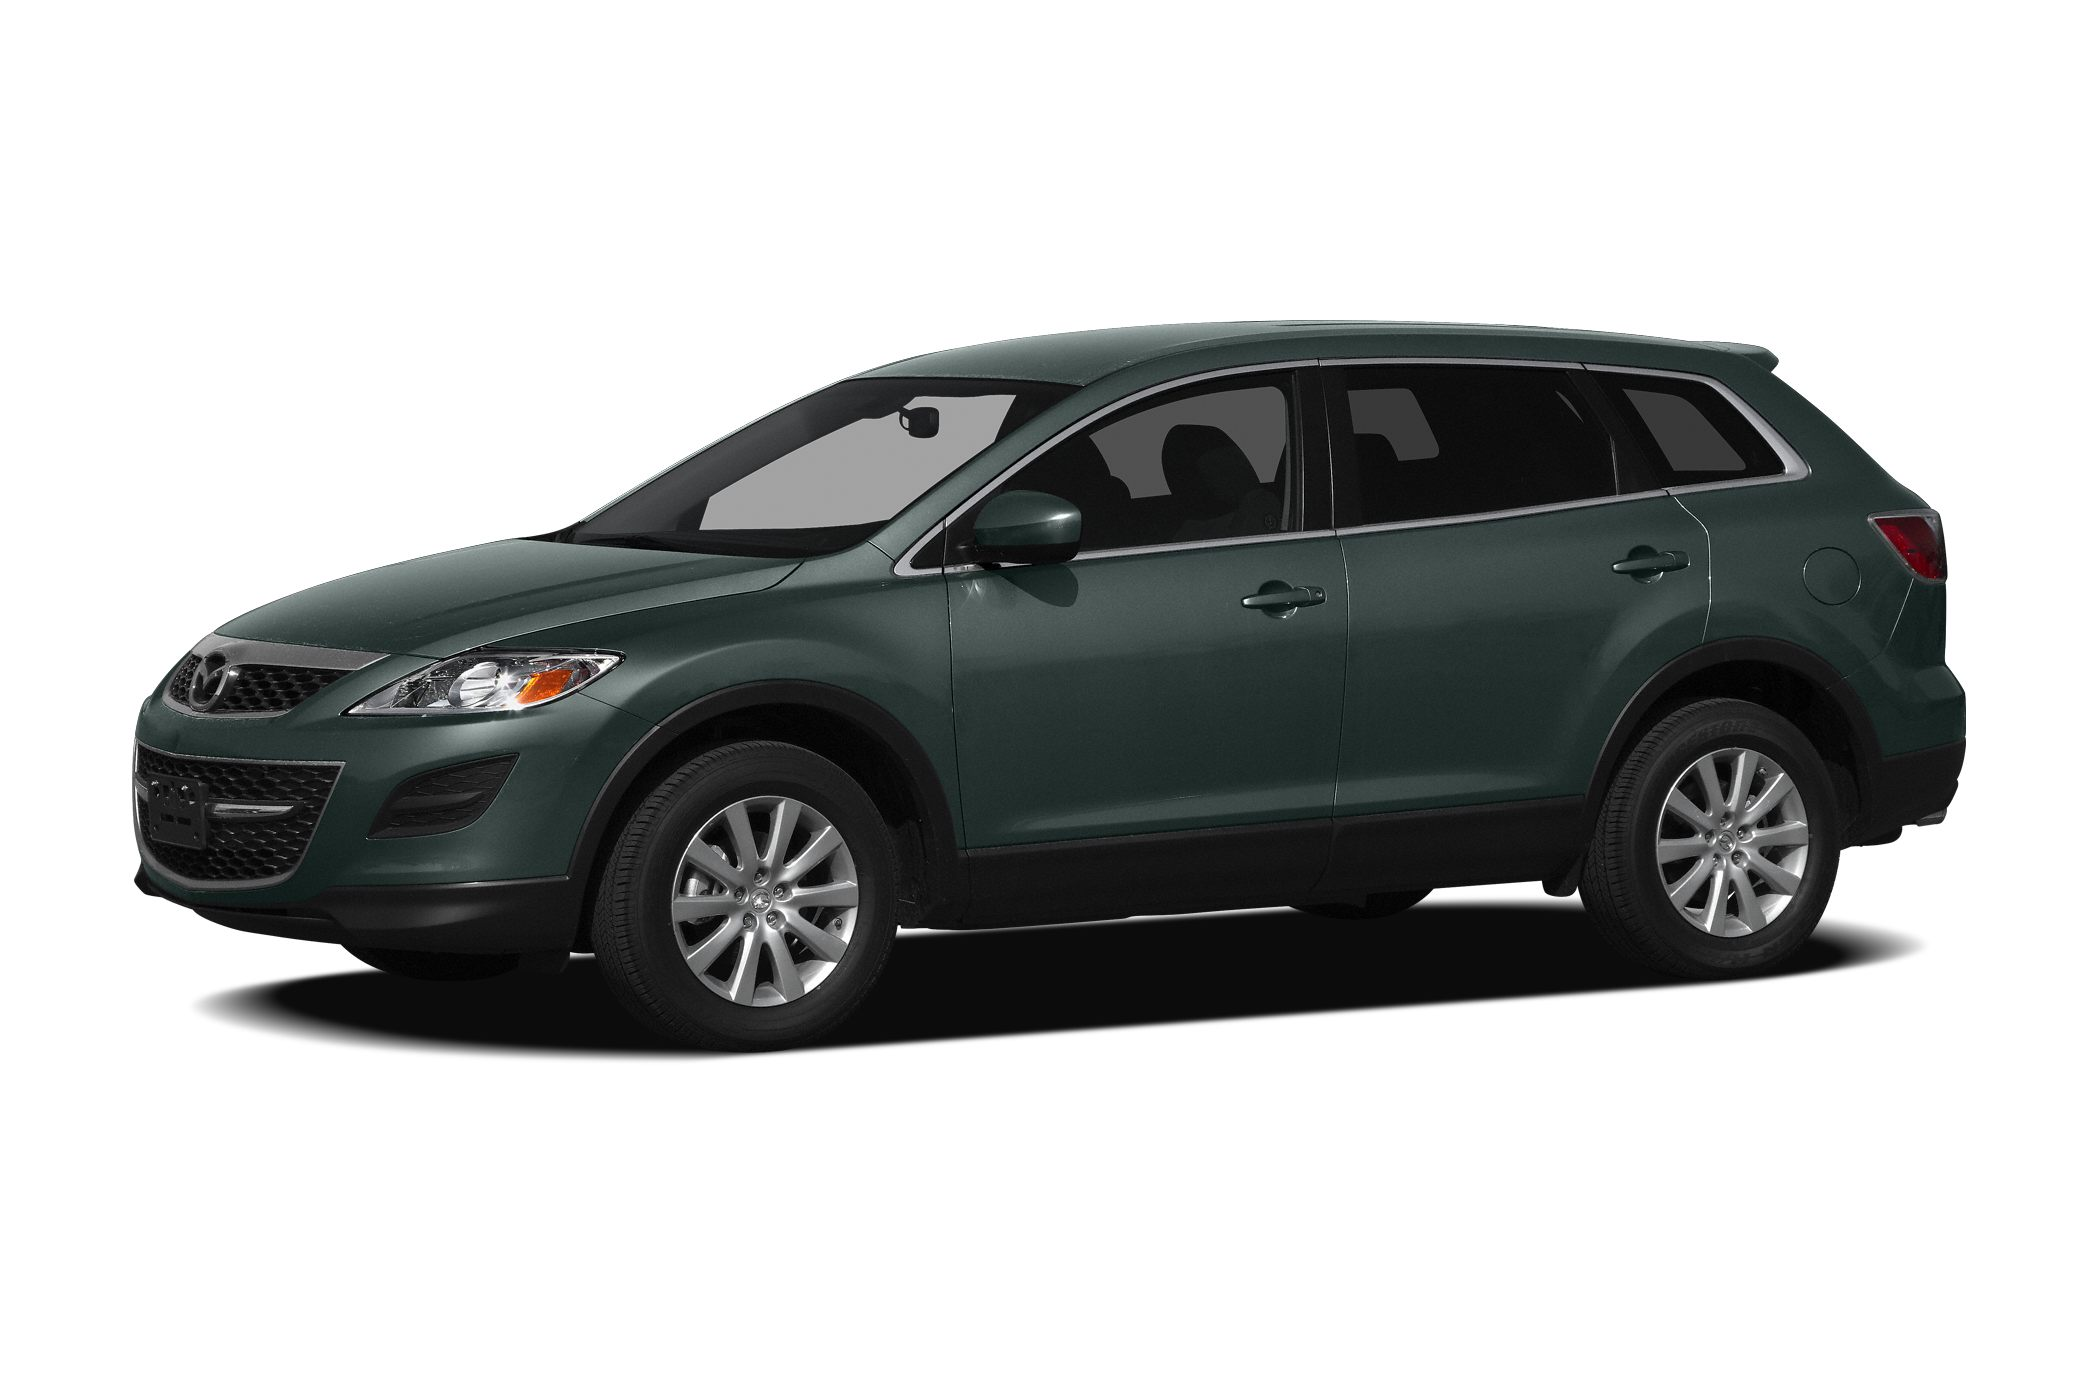 2011 Mazda CX-9